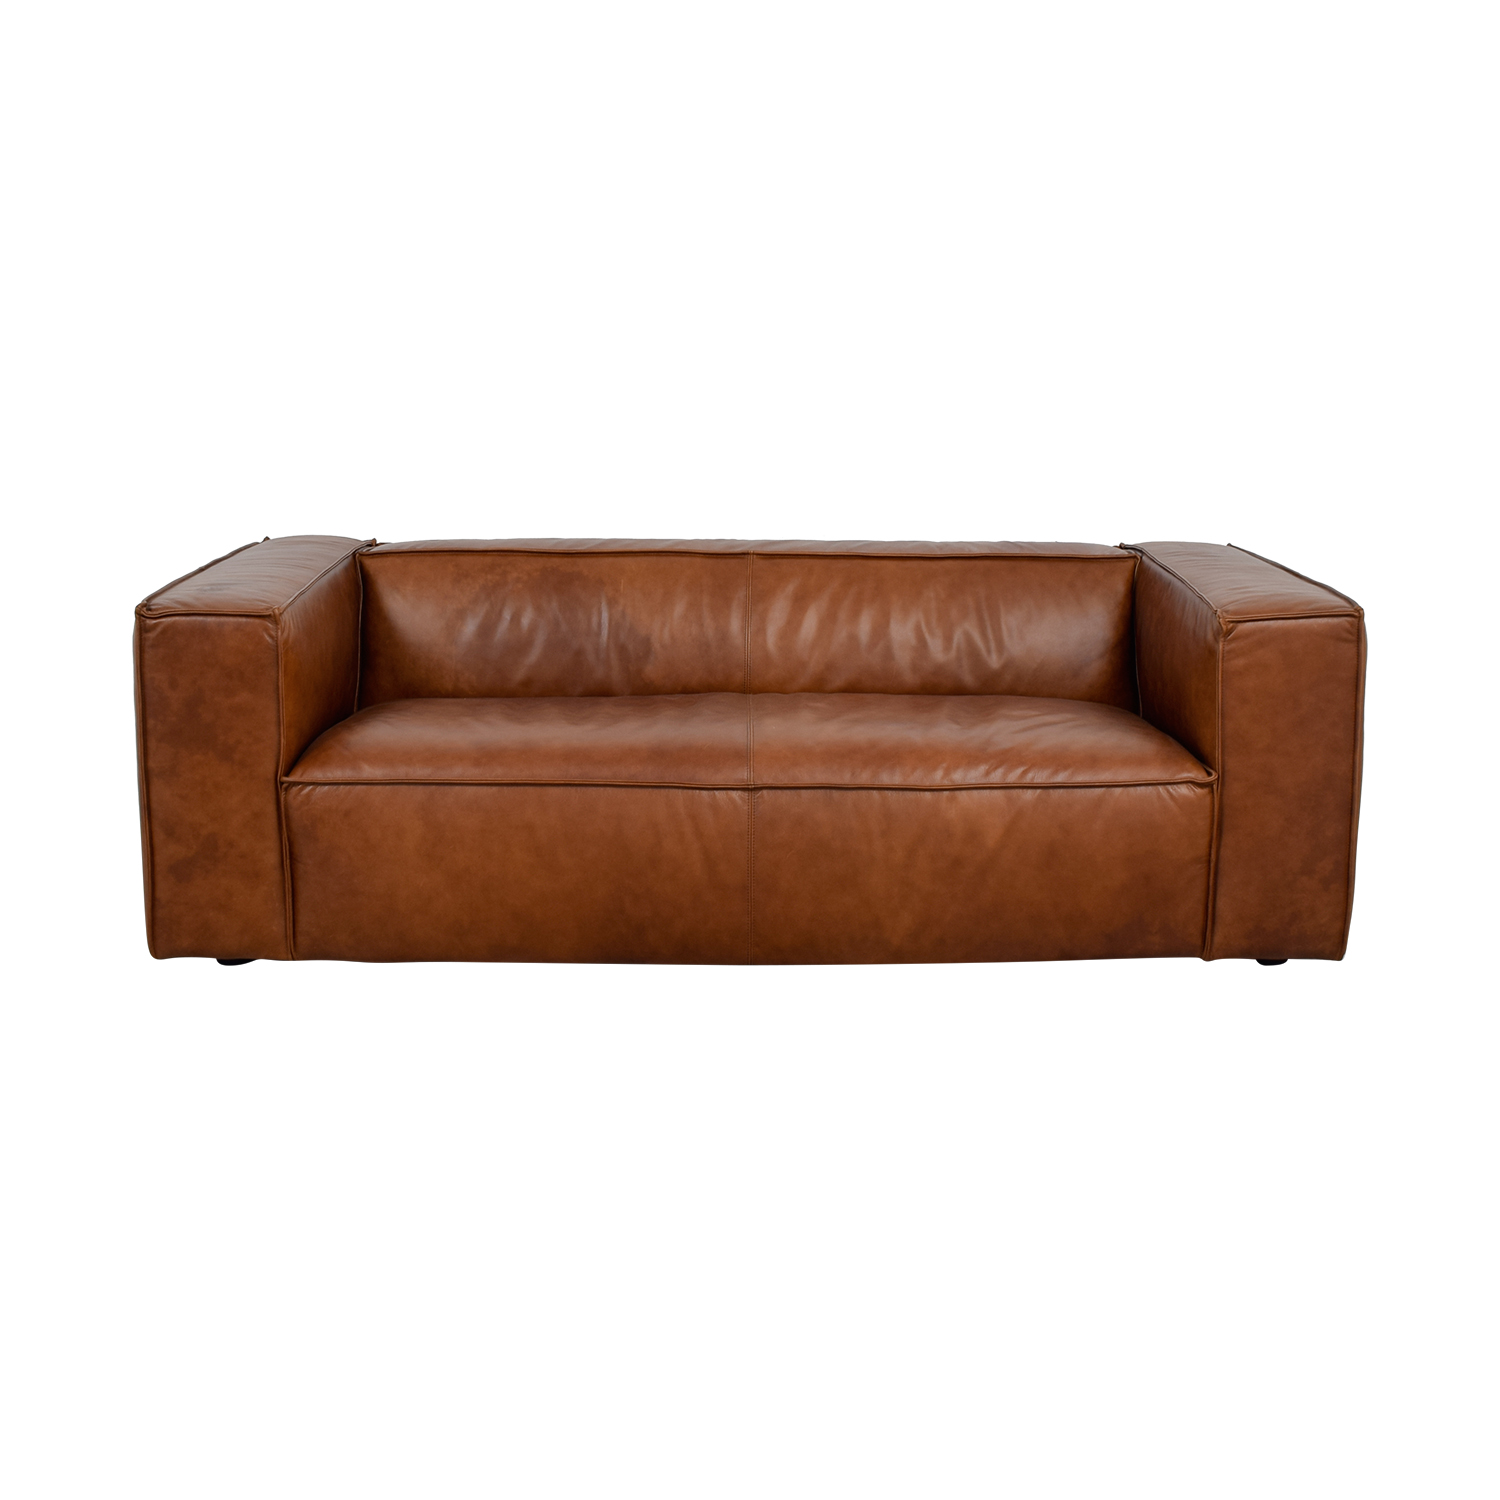 Shop Cognac Leather High Arm Sofa Online ...